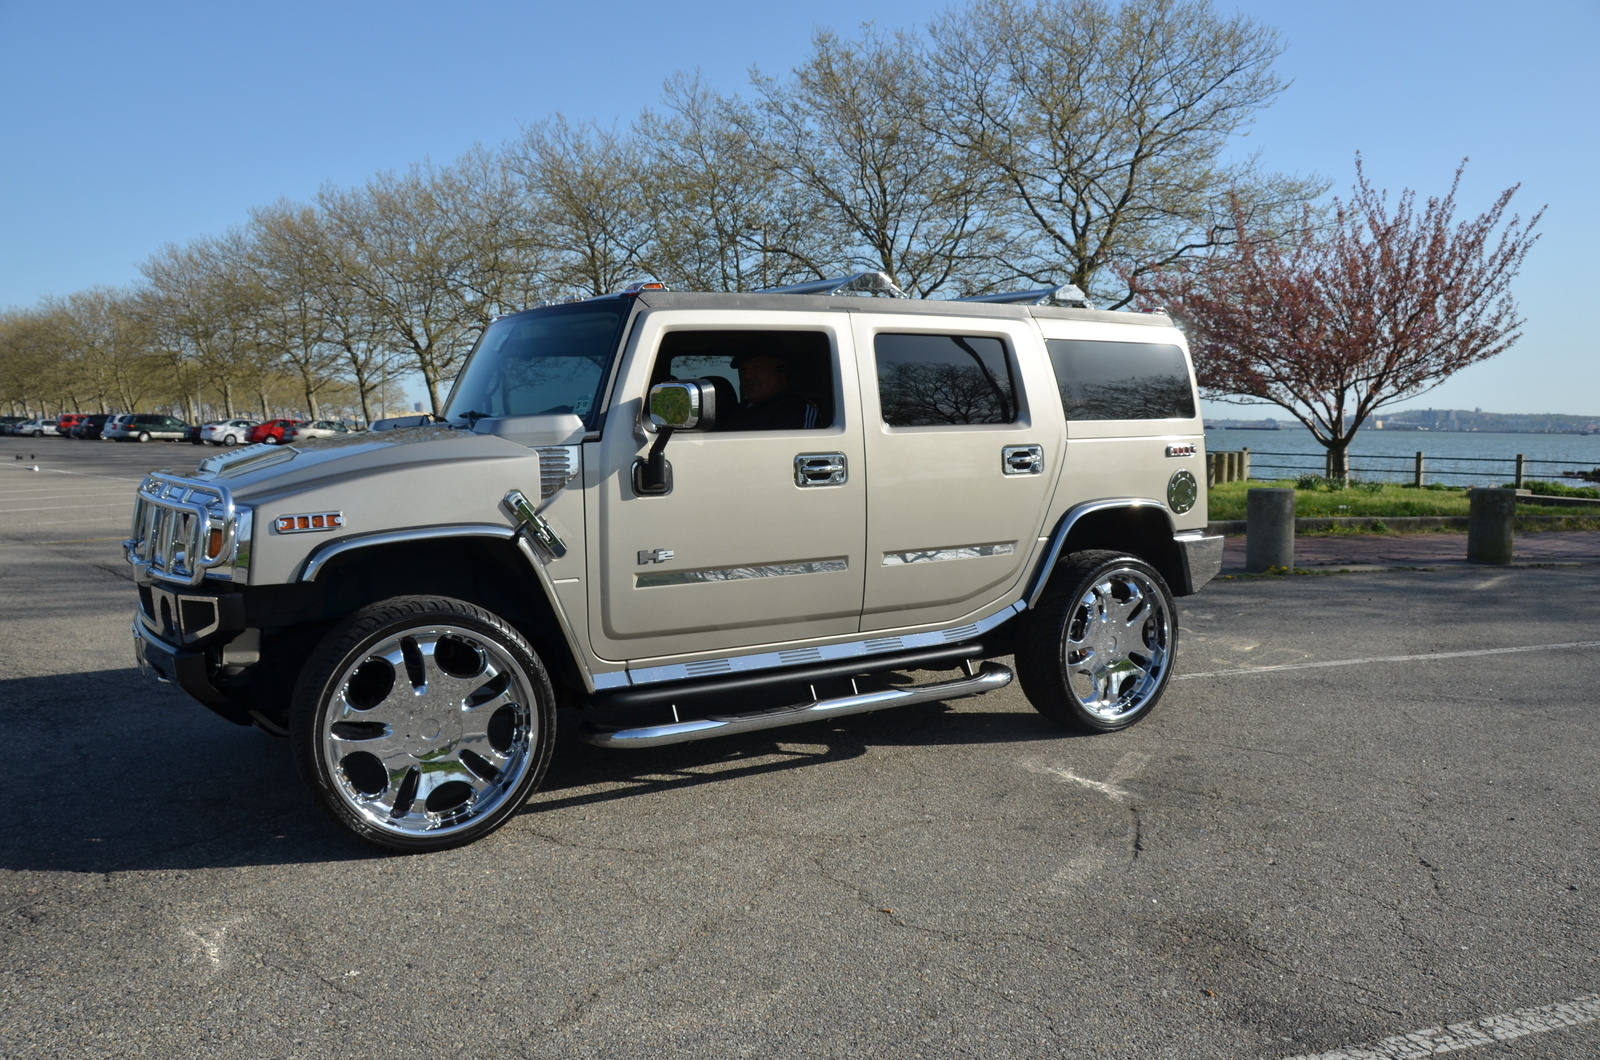 2005 hummer h2 luxury used cars in jersey city 07304. Black Bedroom Furniture Sets. Home Design Ideas